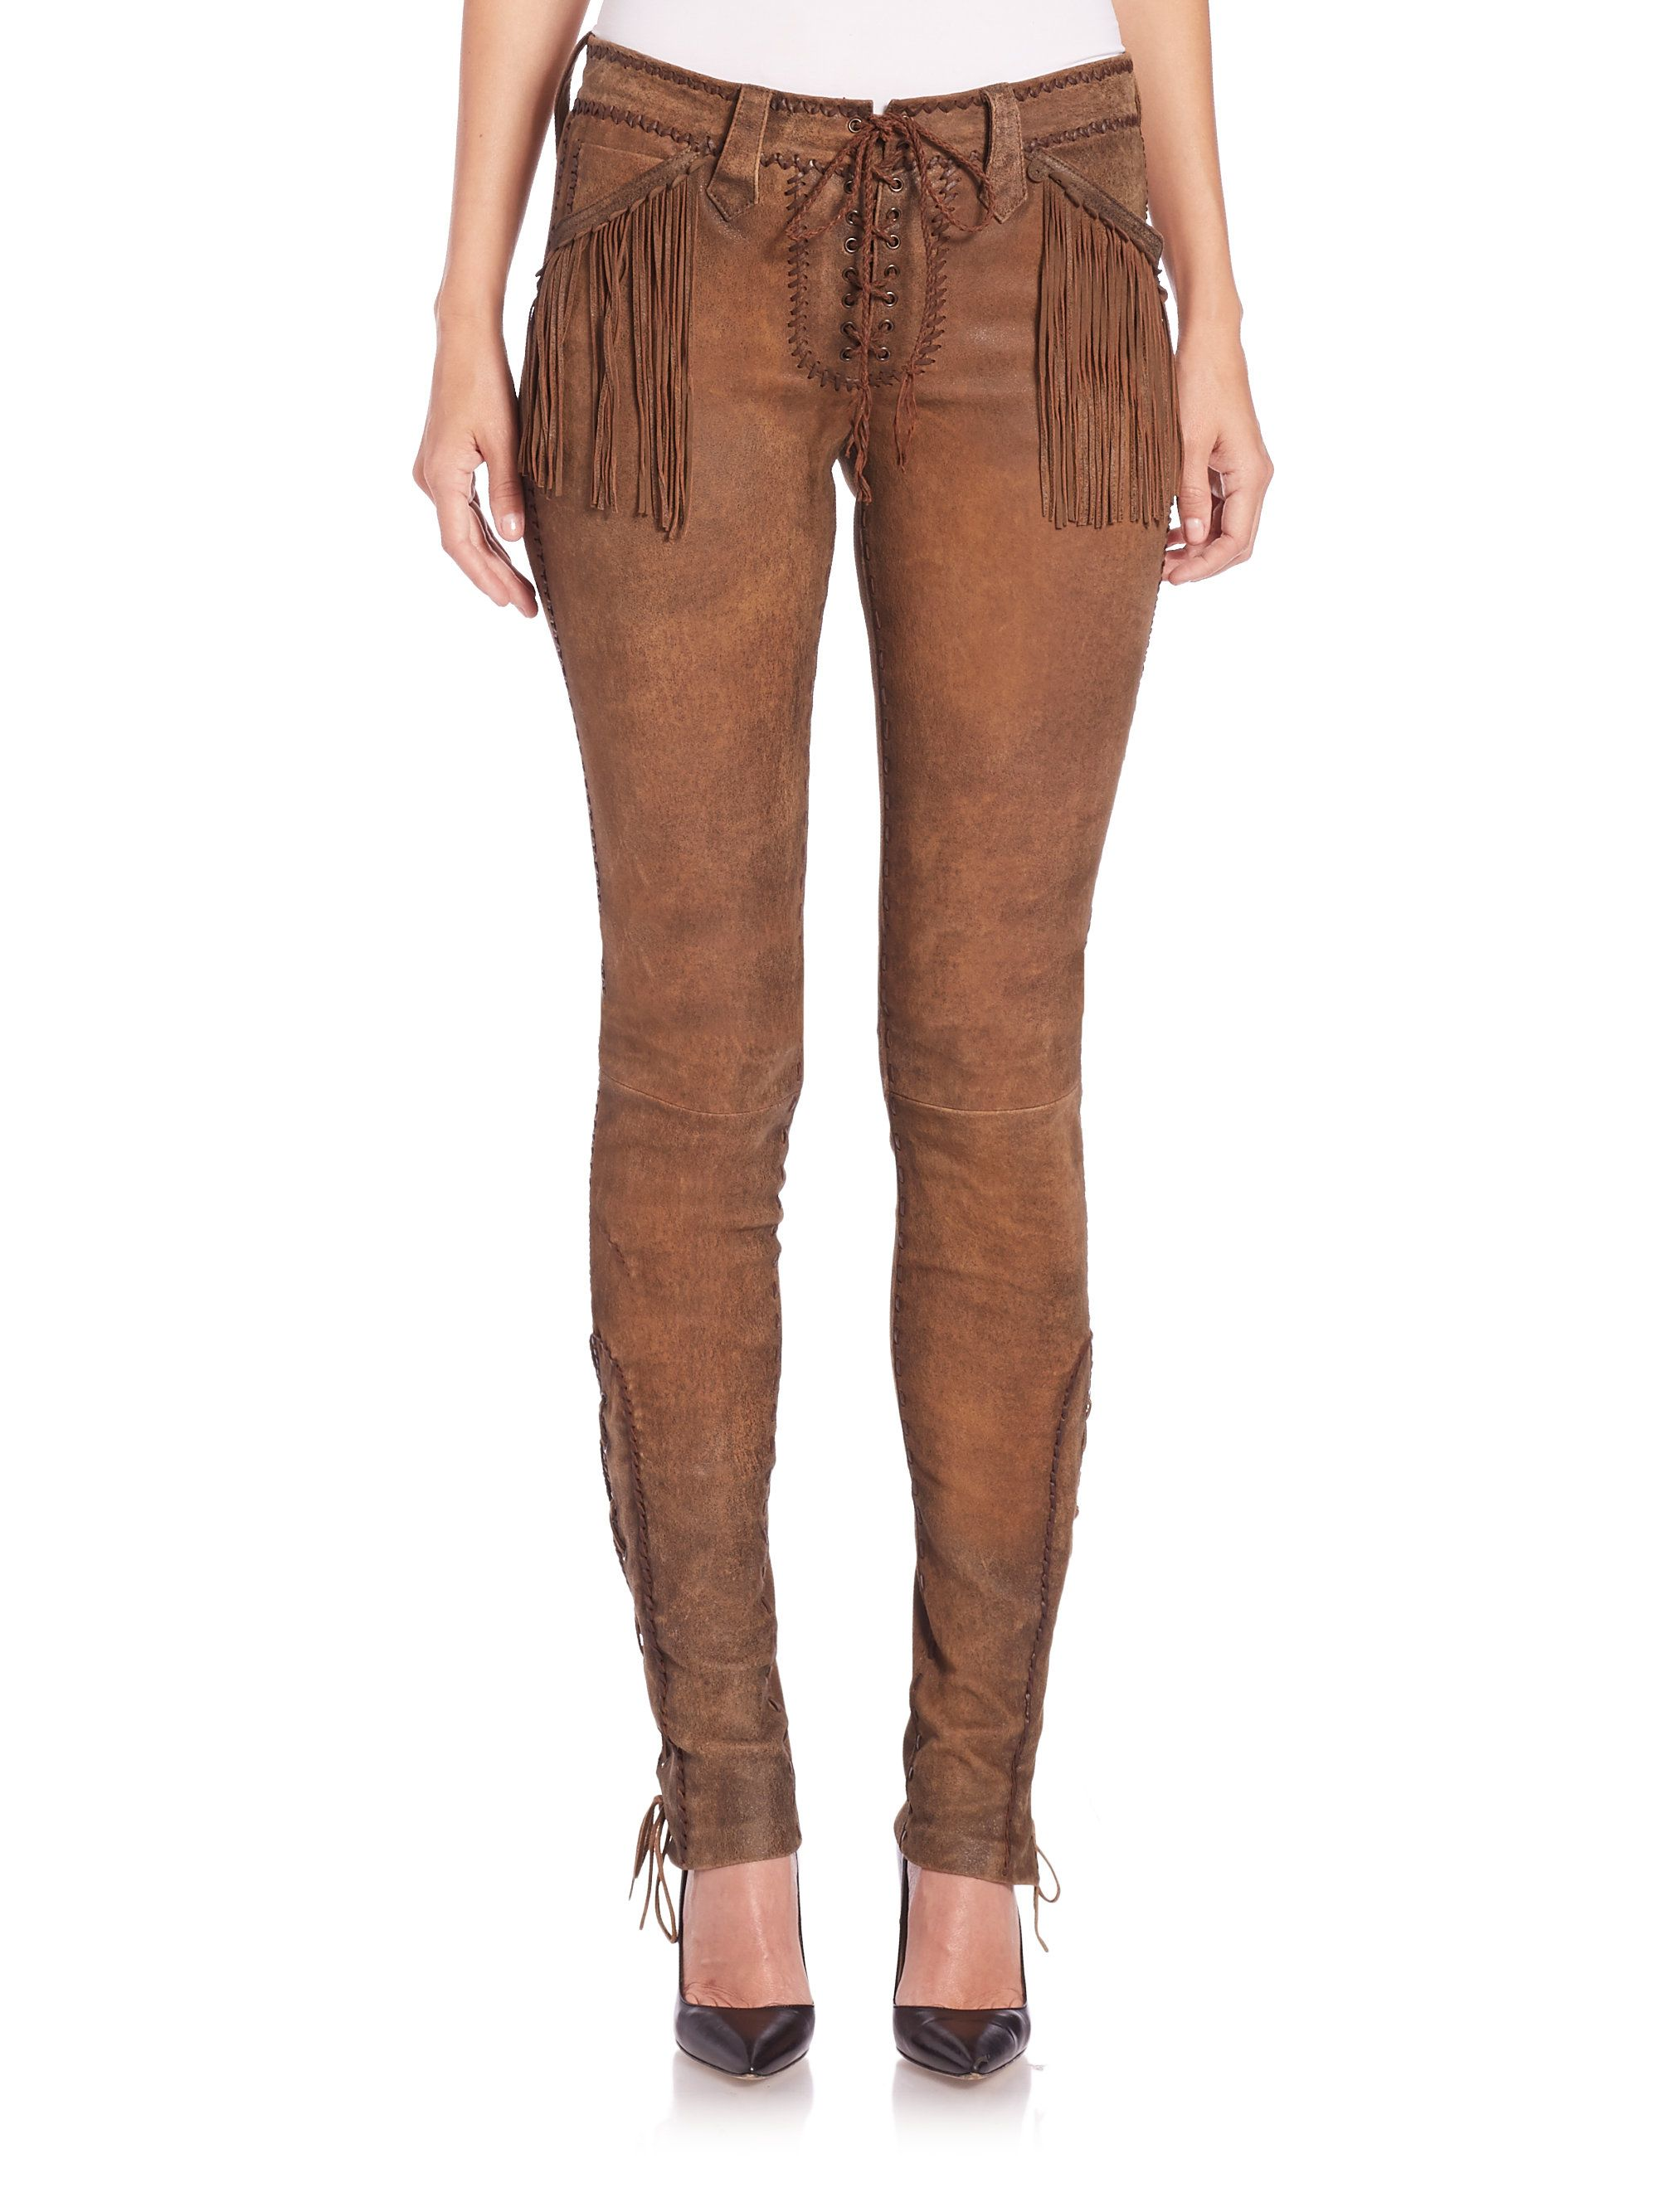 Polo ralph lauren Fringed Stretch Leather Pants in Brown | Lyst